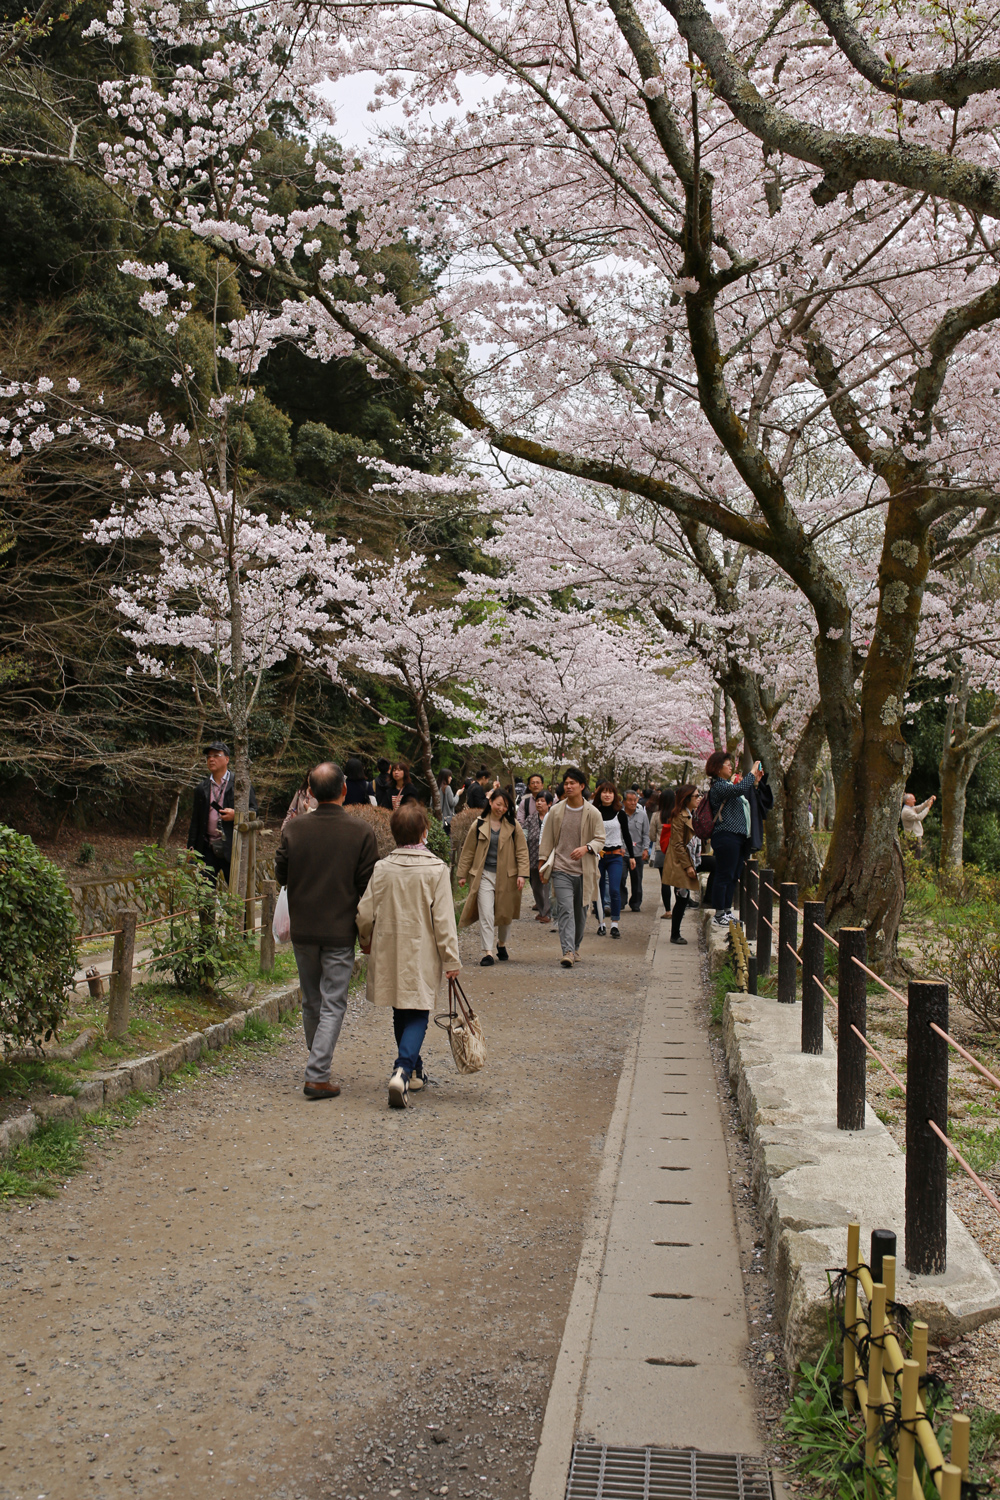 Cherry Blossoms at Philosopher's Path